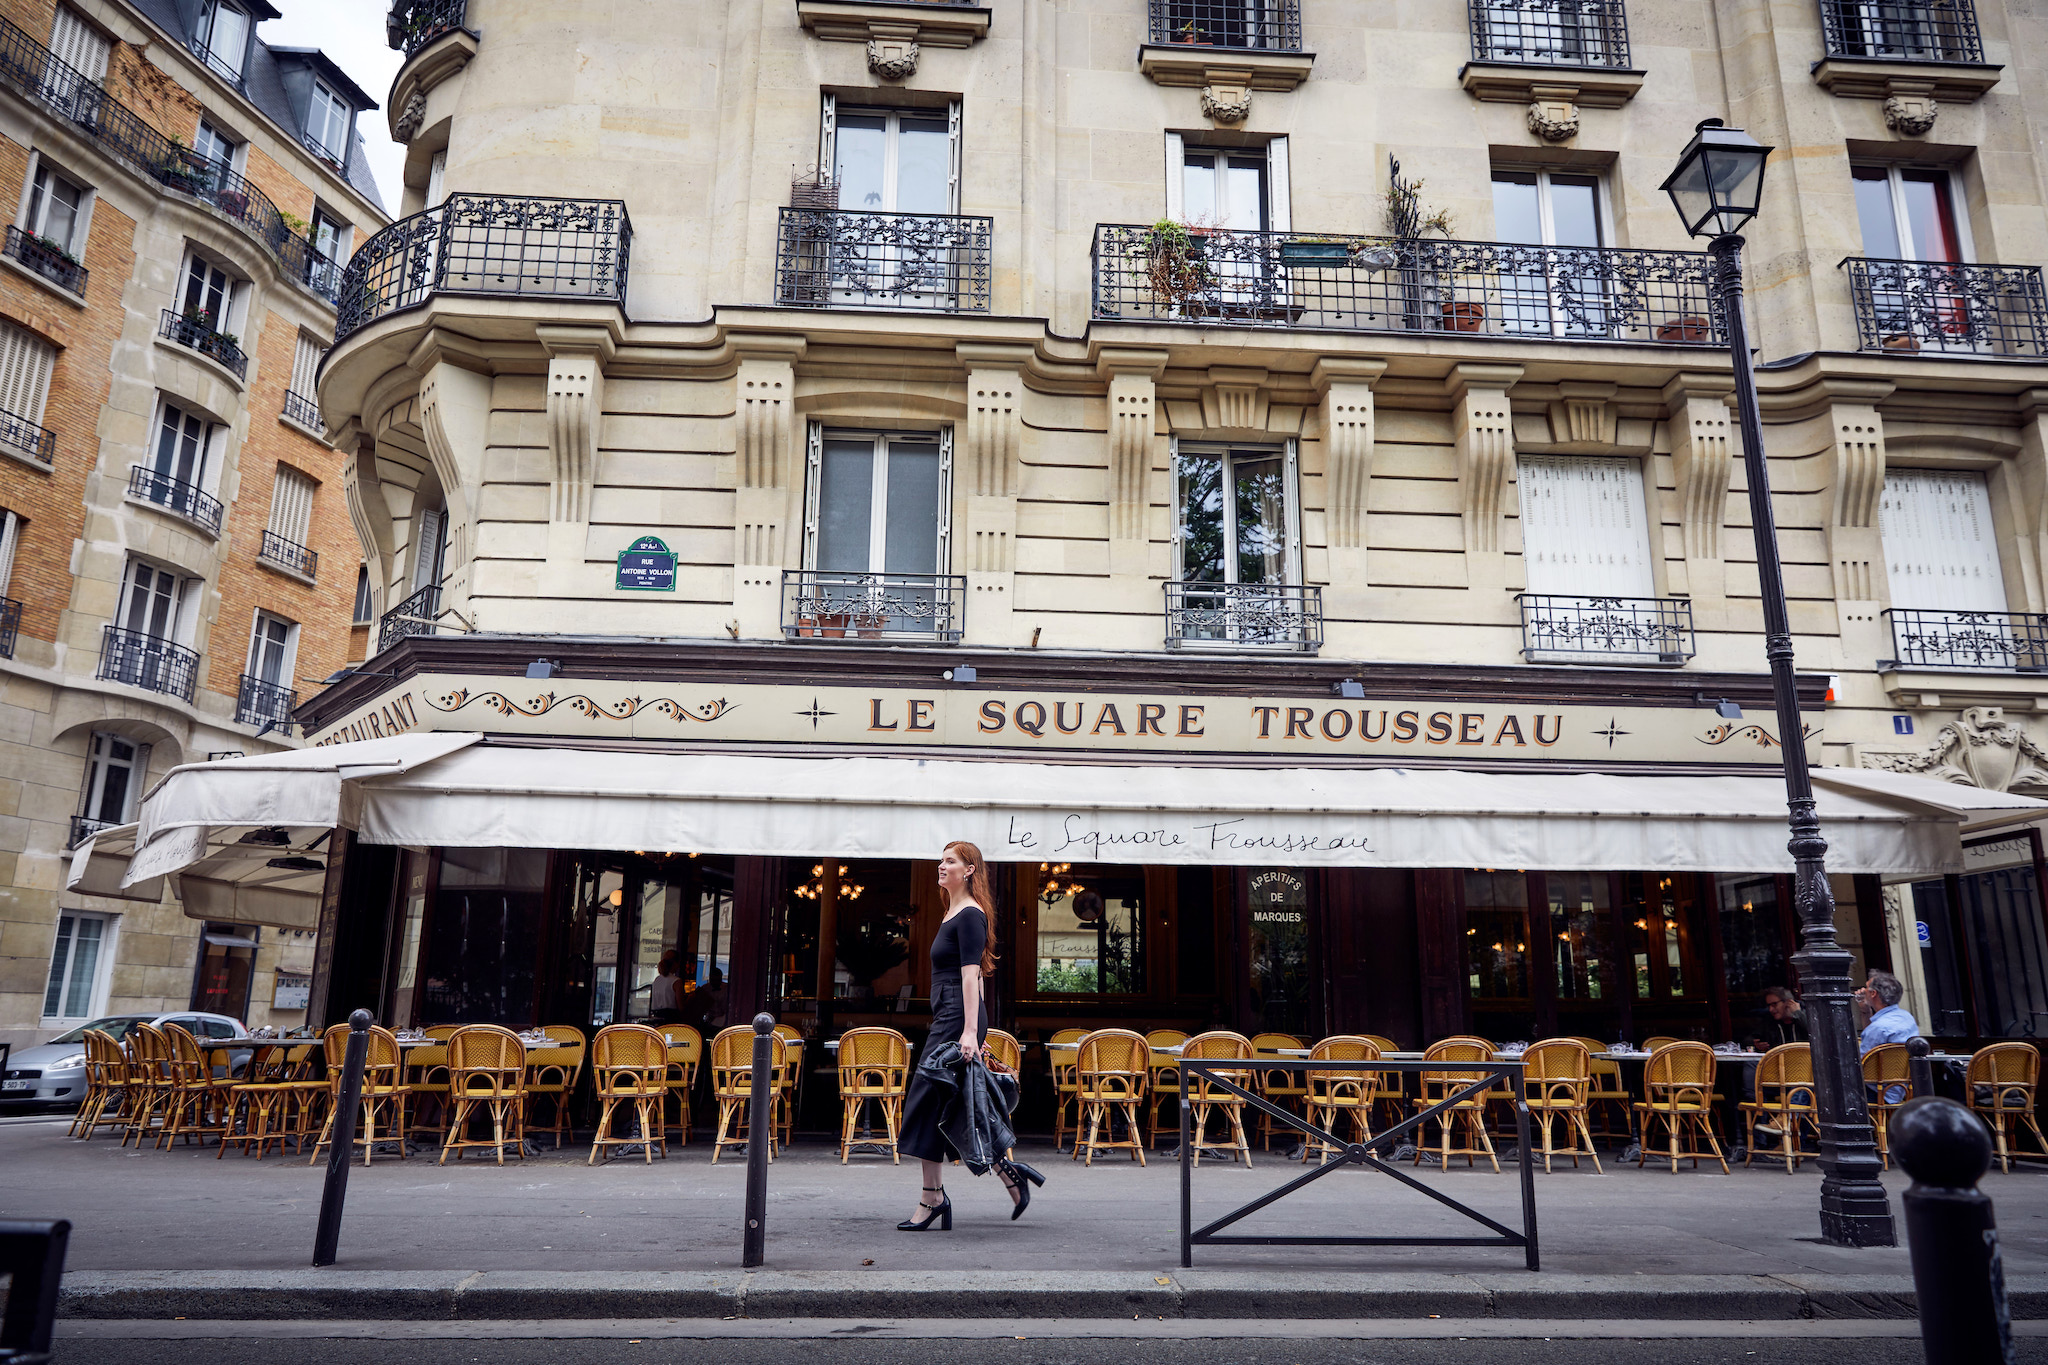 A café and its terrace laid out under its awning in Paris.